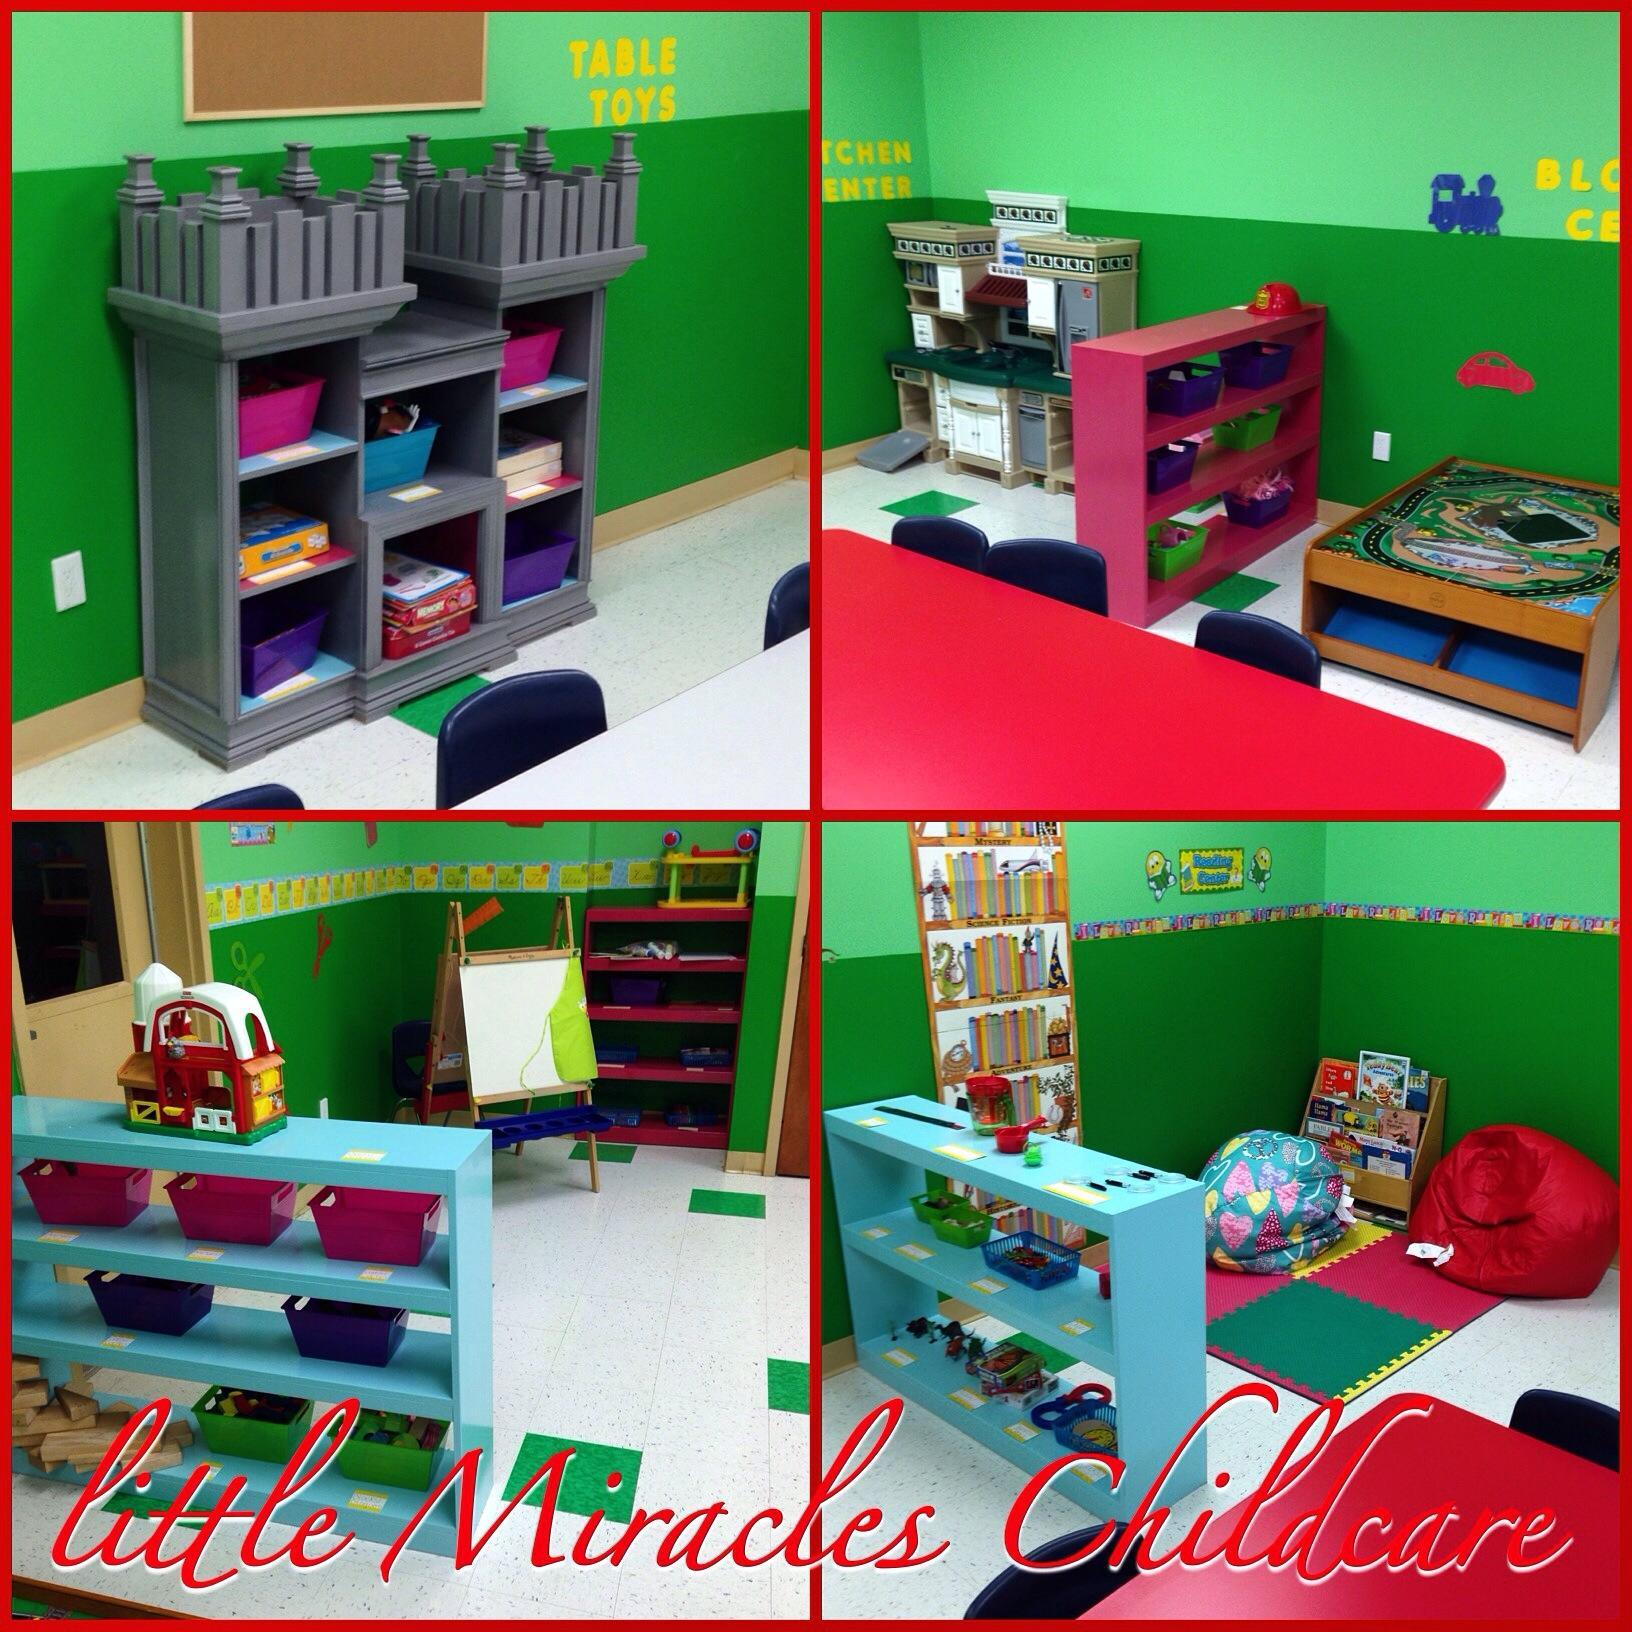 Little Miracles Child Care image 3